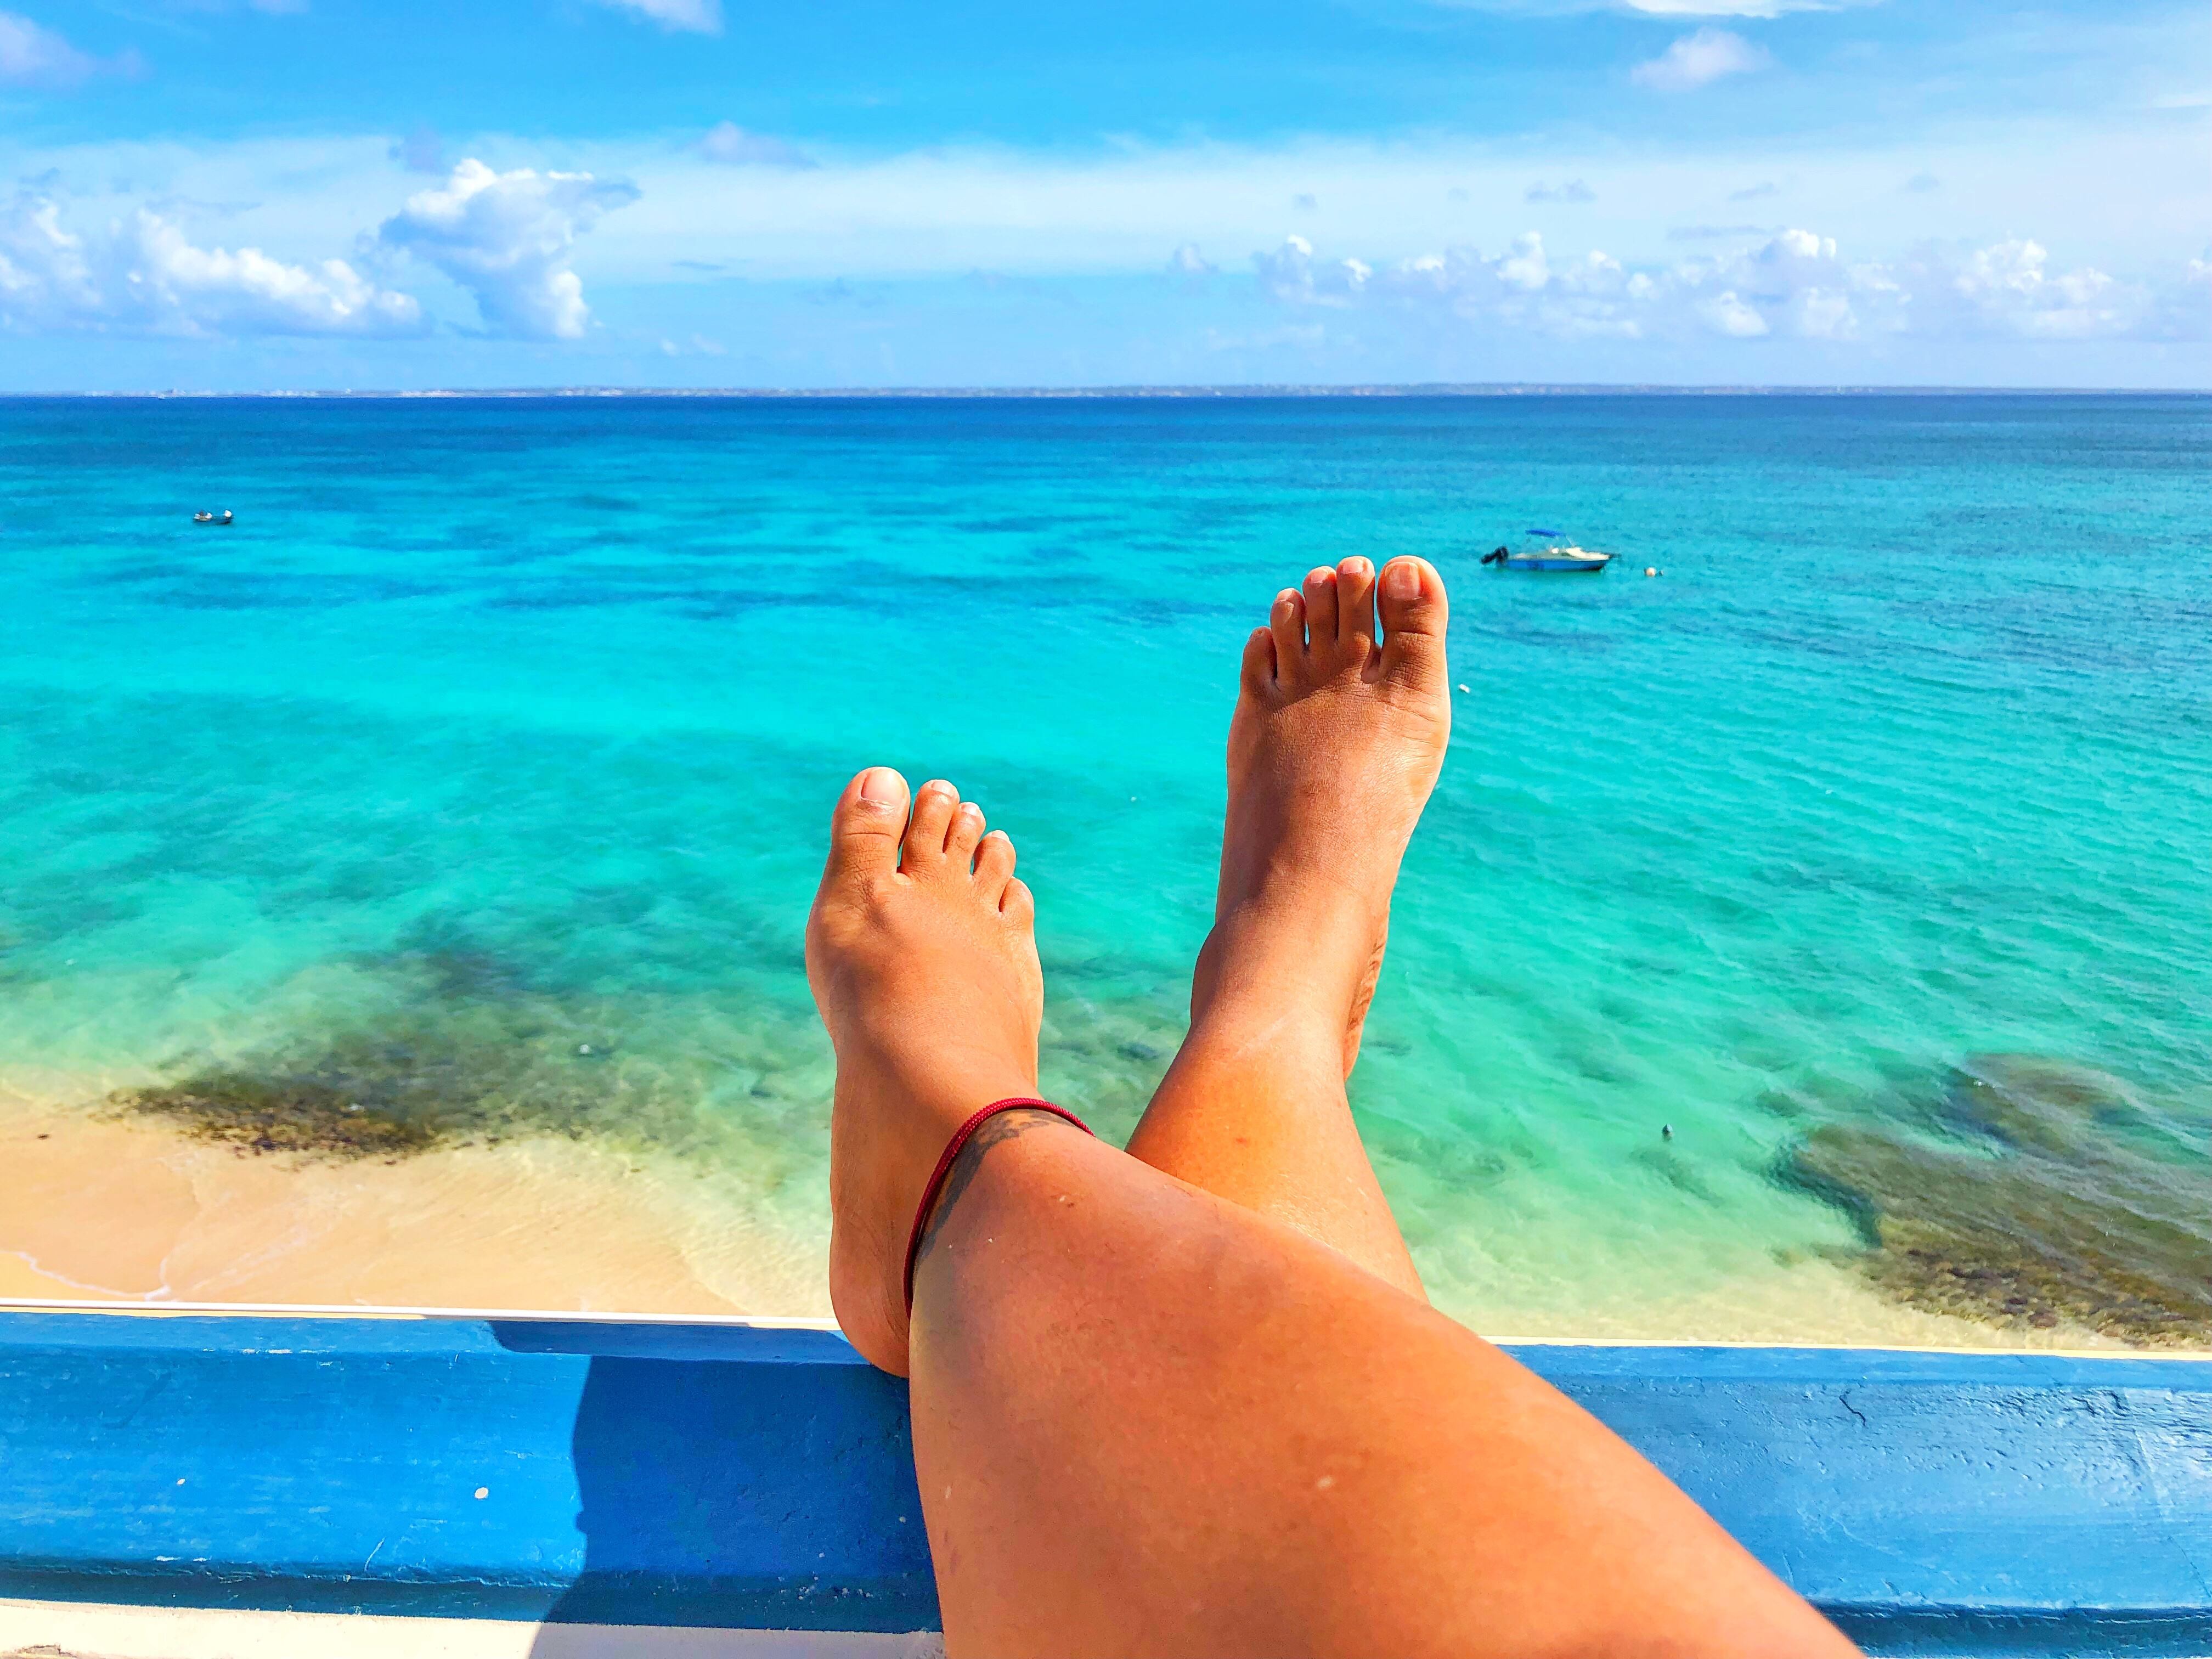 My top 3 safest Caribbean islands for solo female travelers